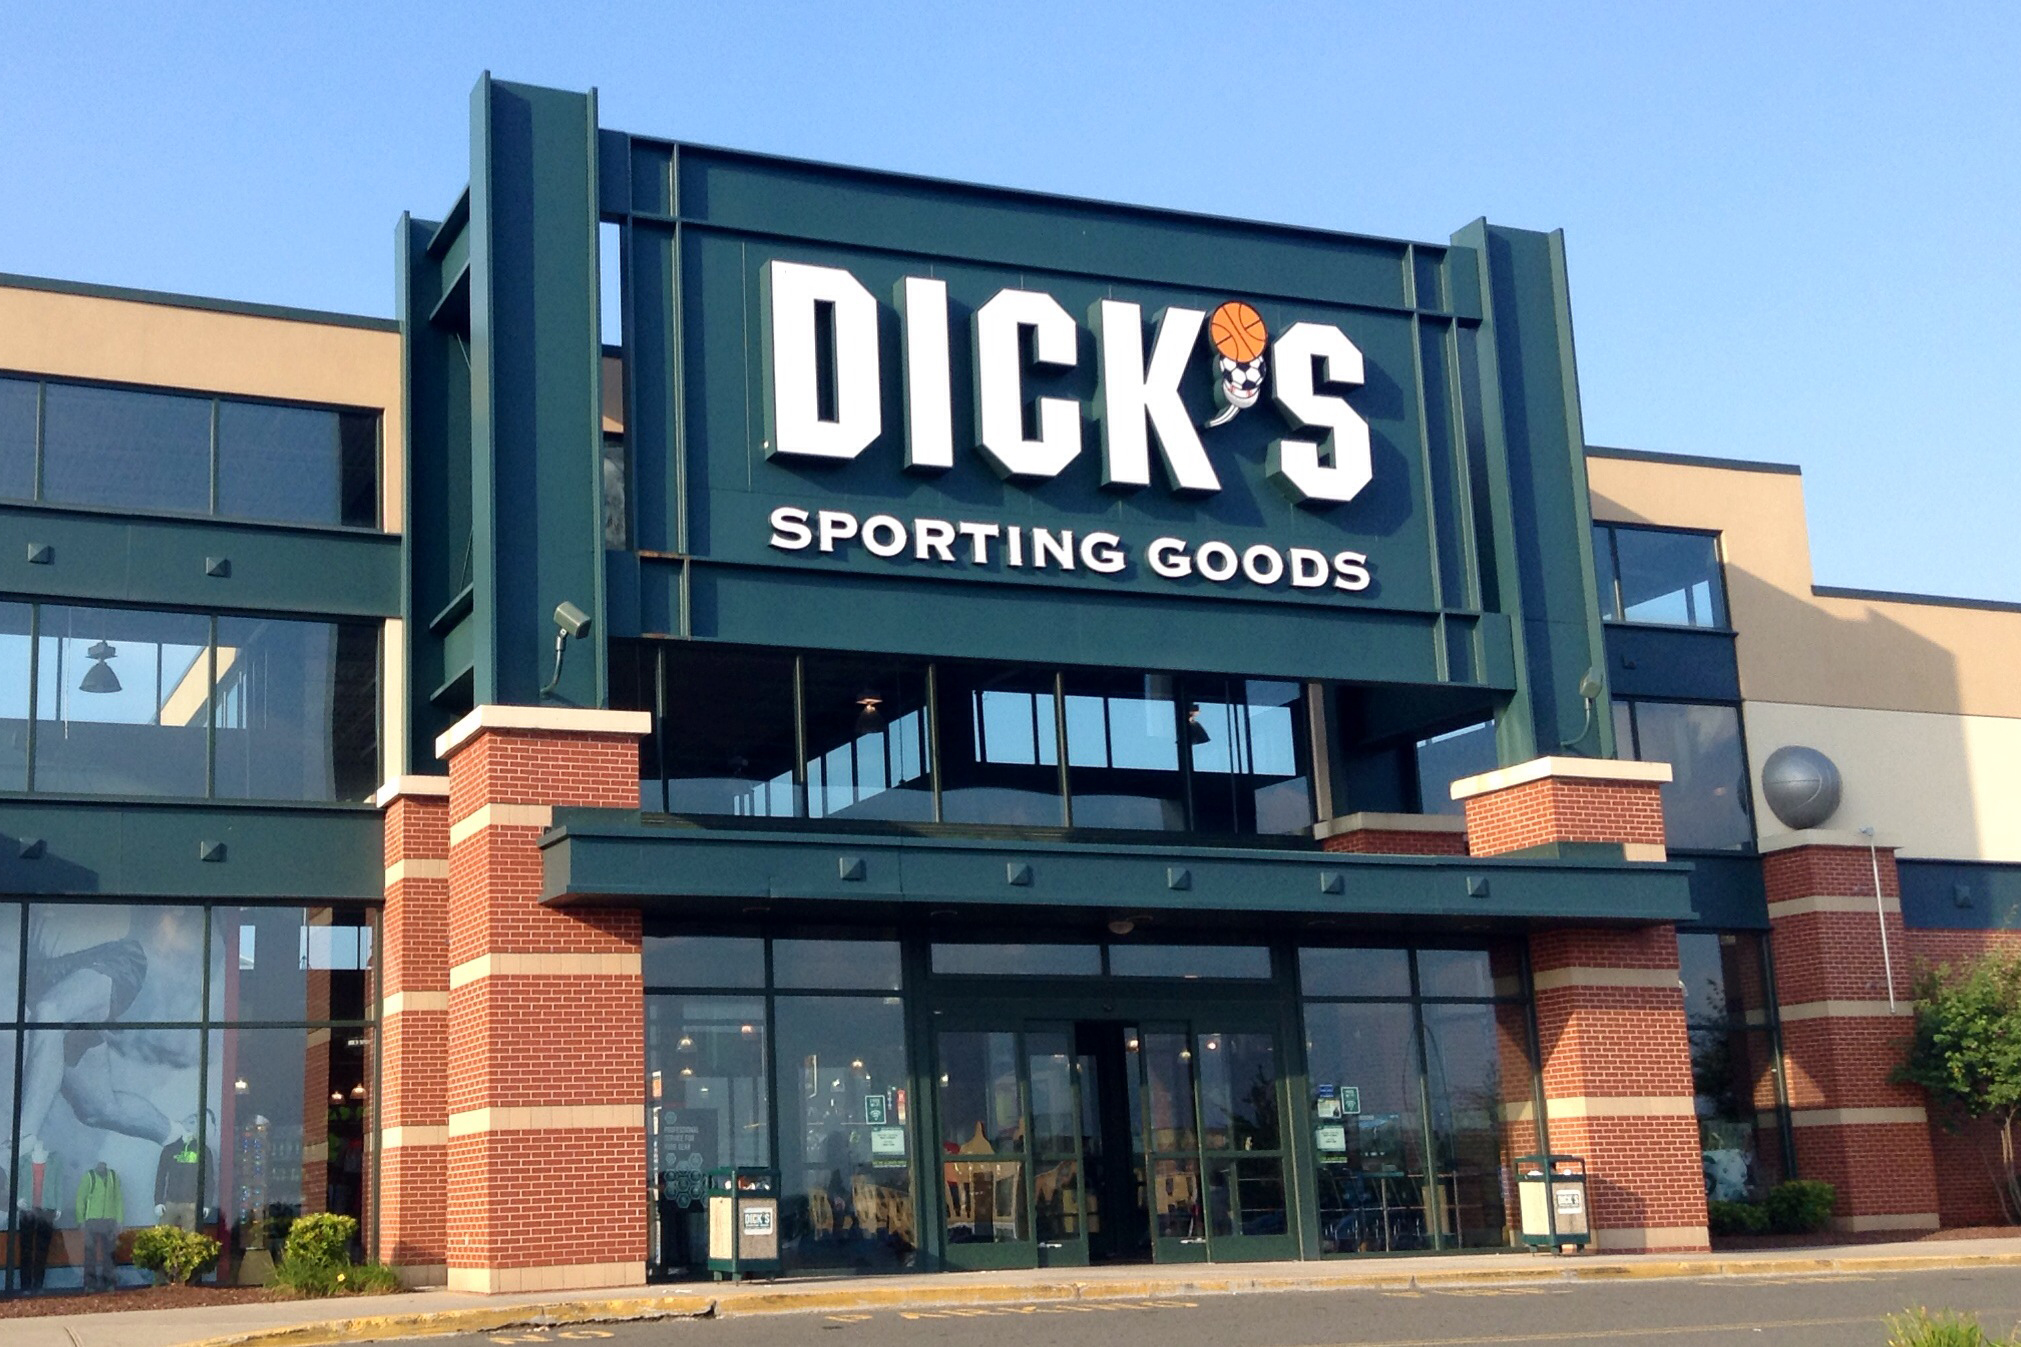 Dicks_Sporting_Goods_Exterior